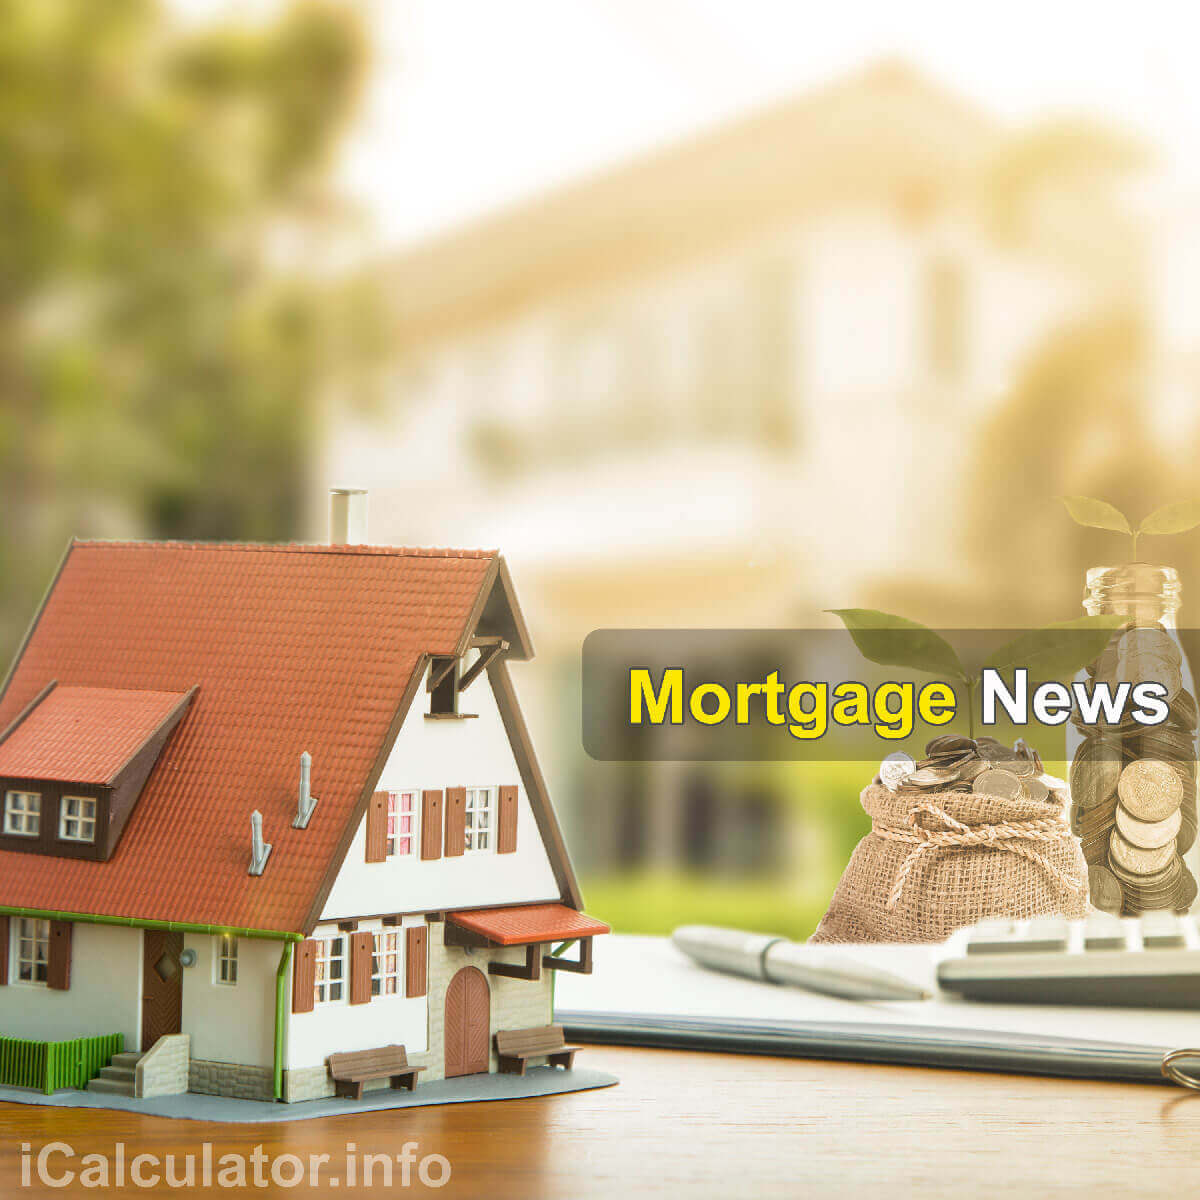 Mortgage Calculator. This image shows a beautiful home for a first time buyer, a notepad and a calculator being used to calculate the monthly repayment amount on a £95,000.00 mortgage with a 6% mortgage interest rate. Alternatively, people can calculate their monthly mortgage repayments on £95,000.00 at 6% using the mortgage calculator by iCalculator